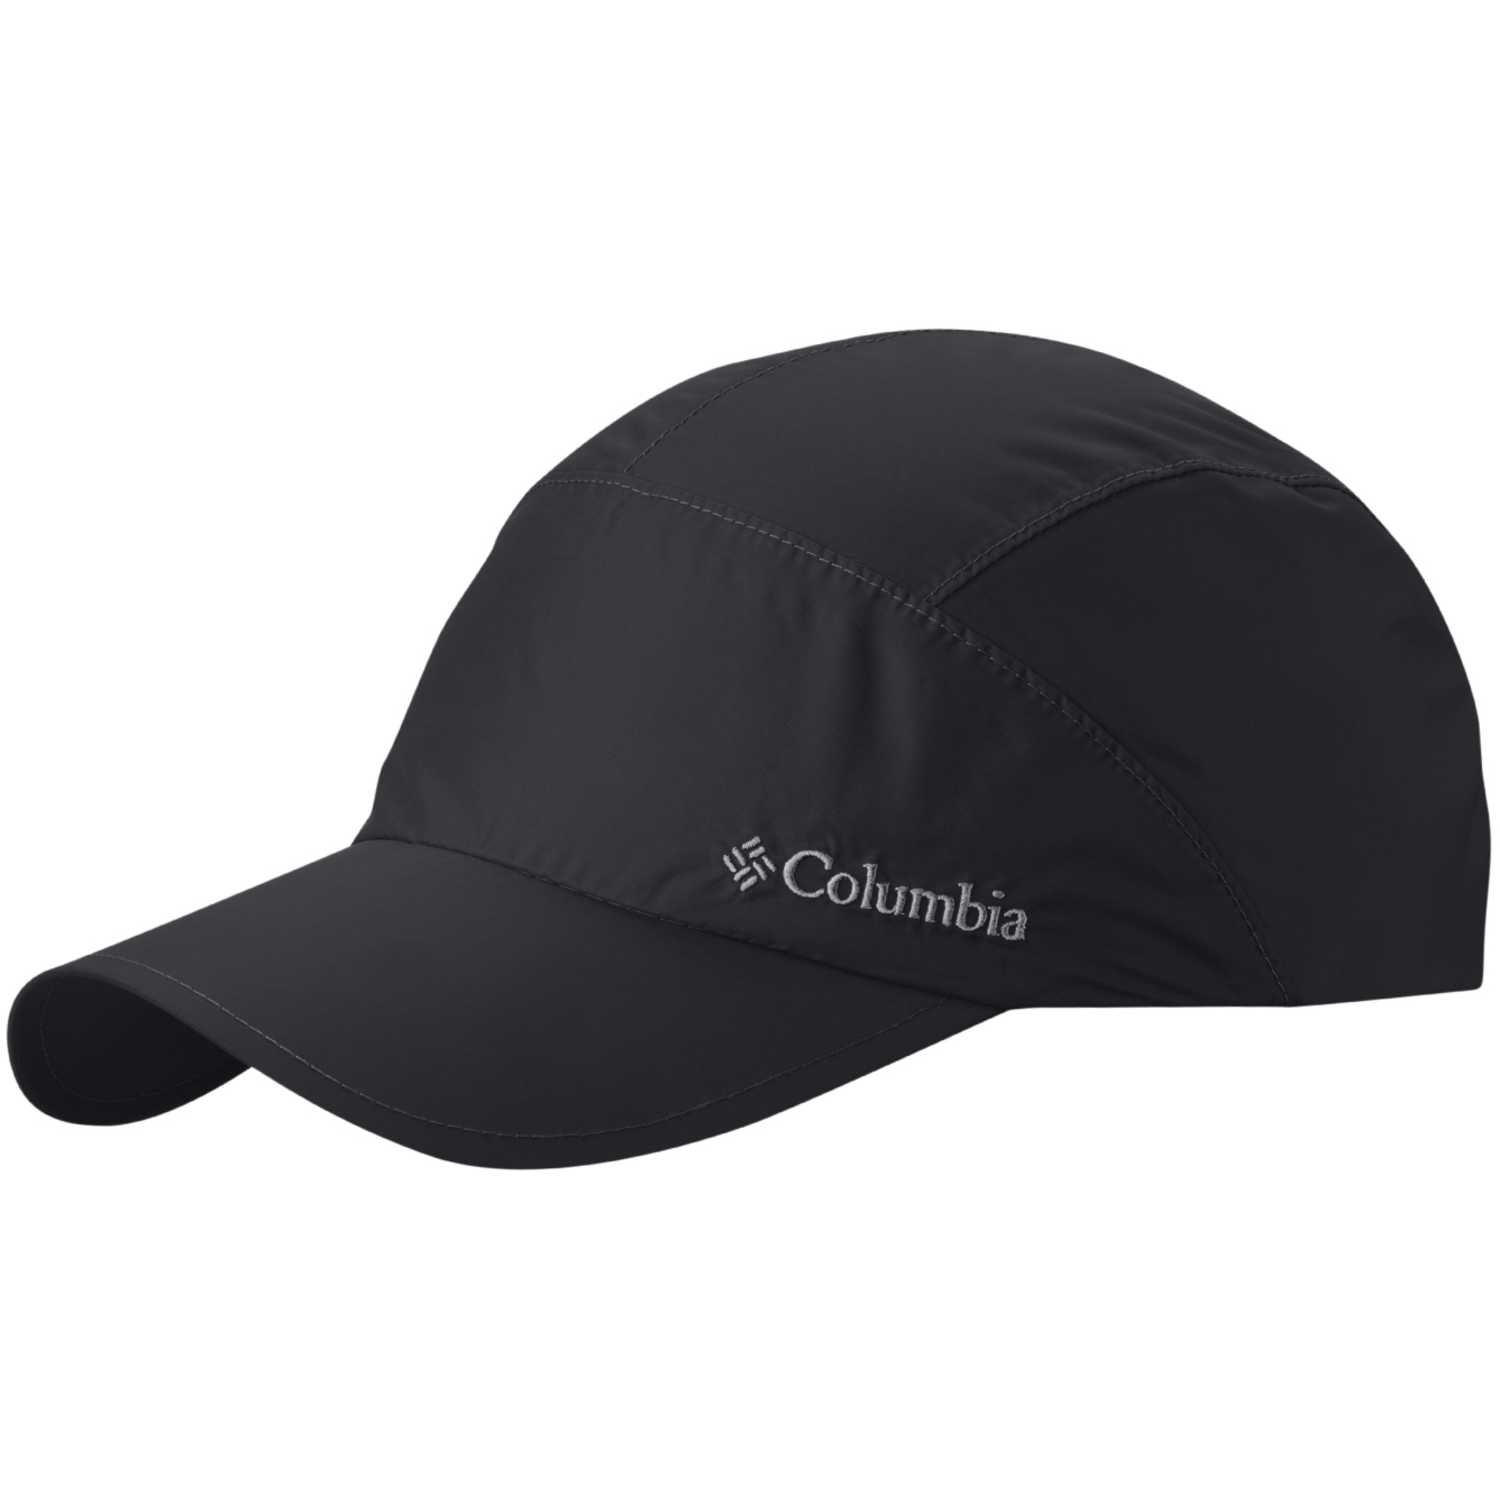 Gorro de Hombre Columbia Plomo watertight cap